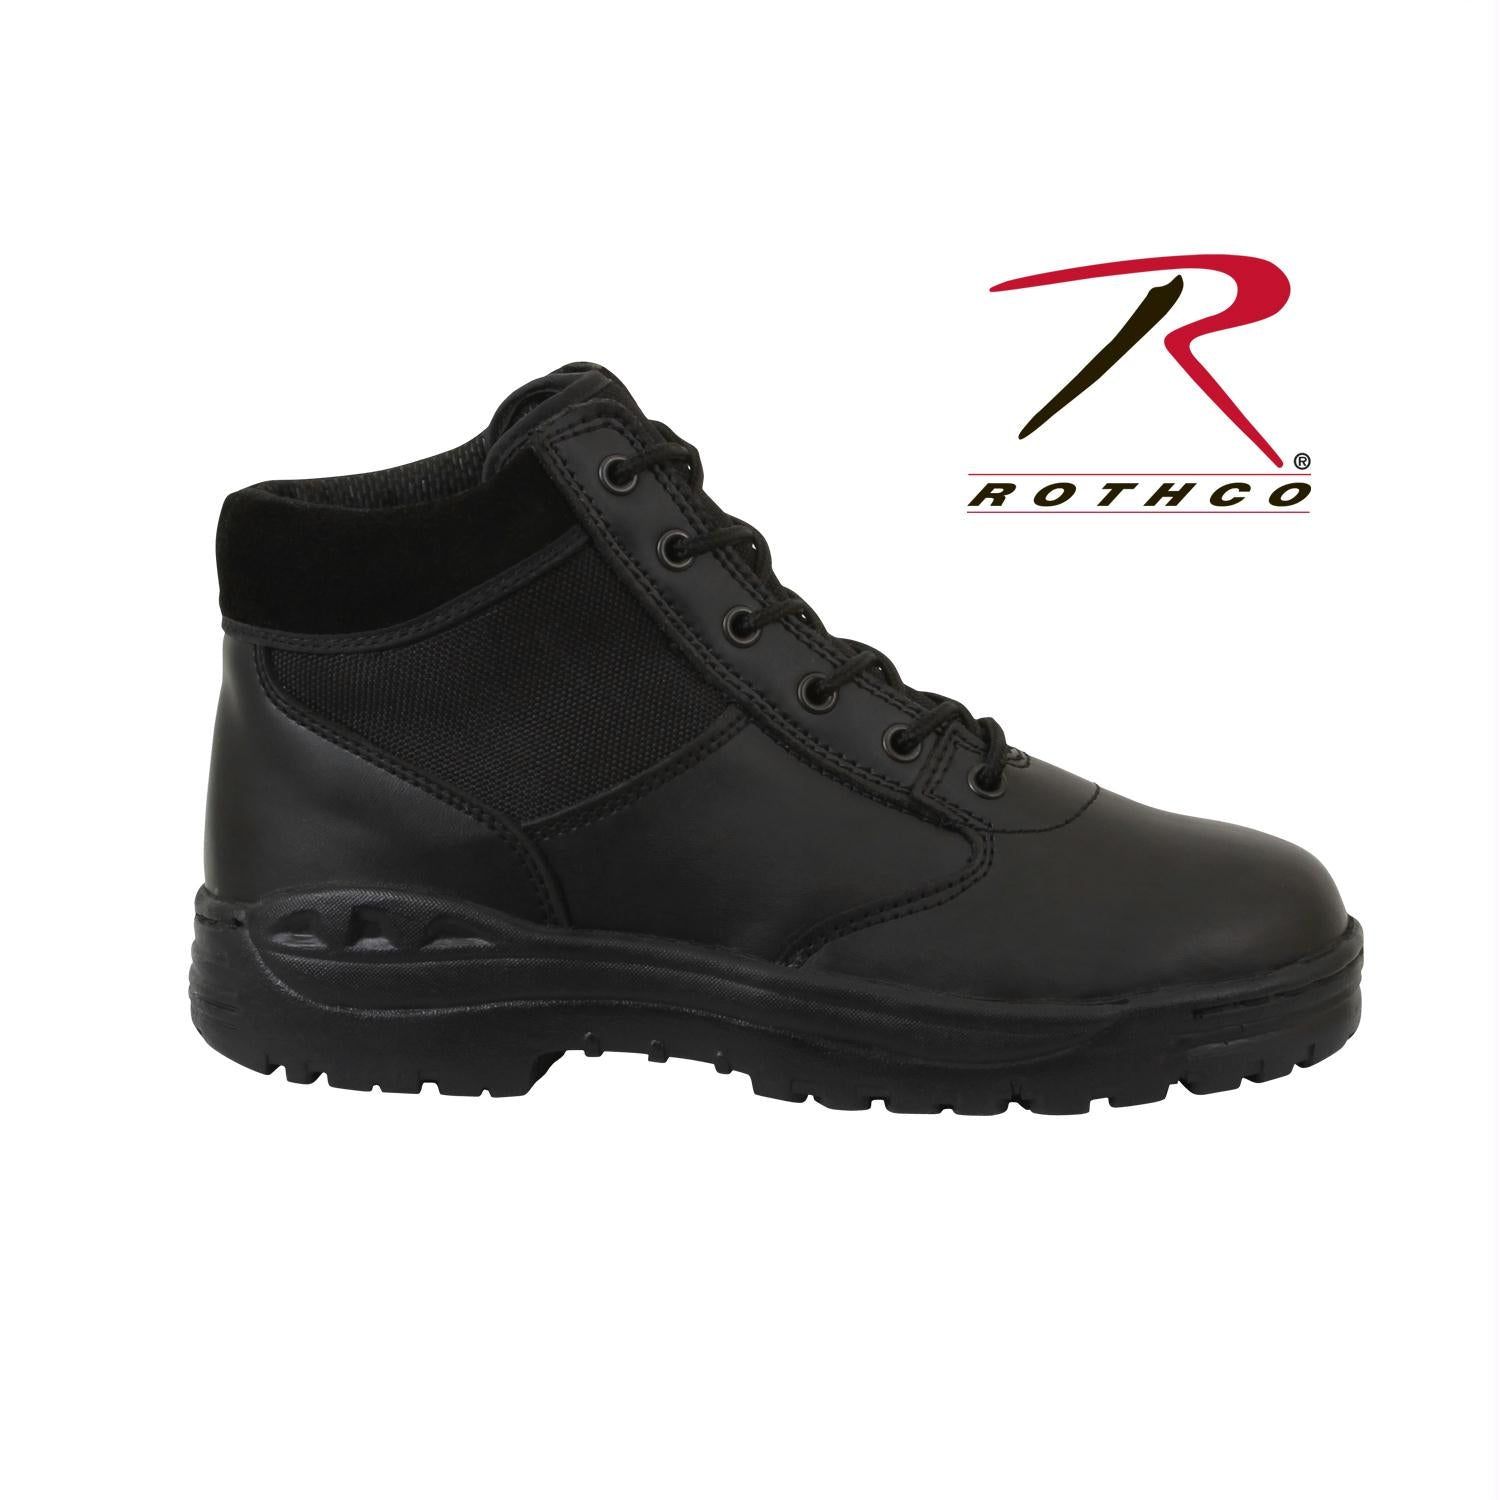 Rothco Forced Entry Security Boot / 6'' - 10